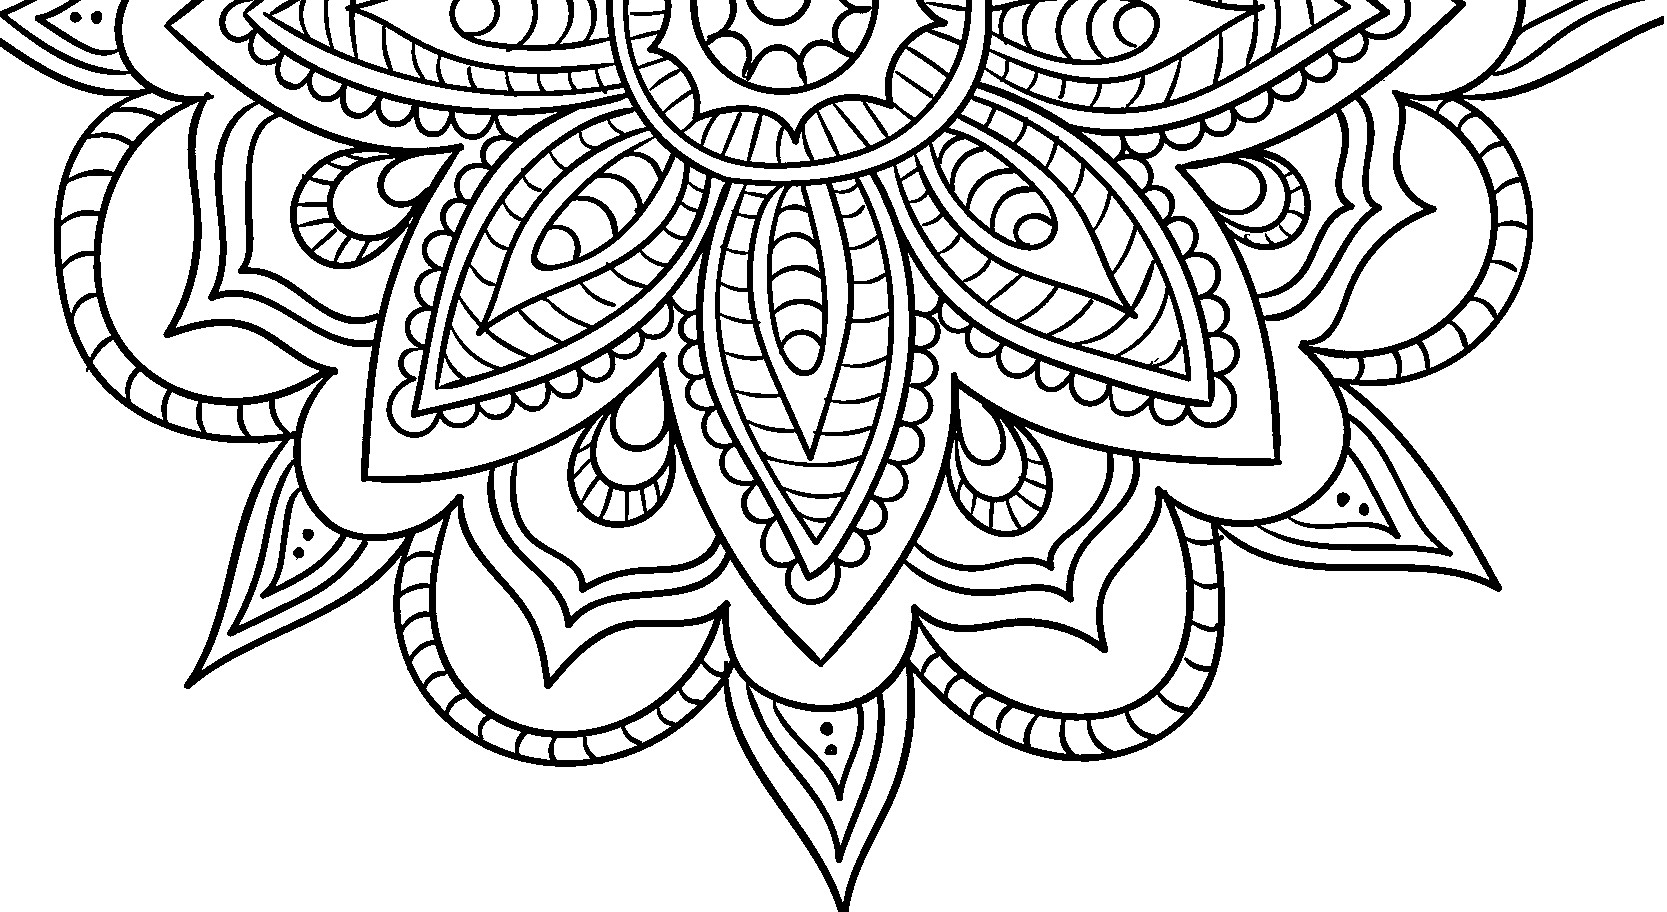 Simple Adult Coloring Pages  Adult Coloring Pages Patterns Coloring Home